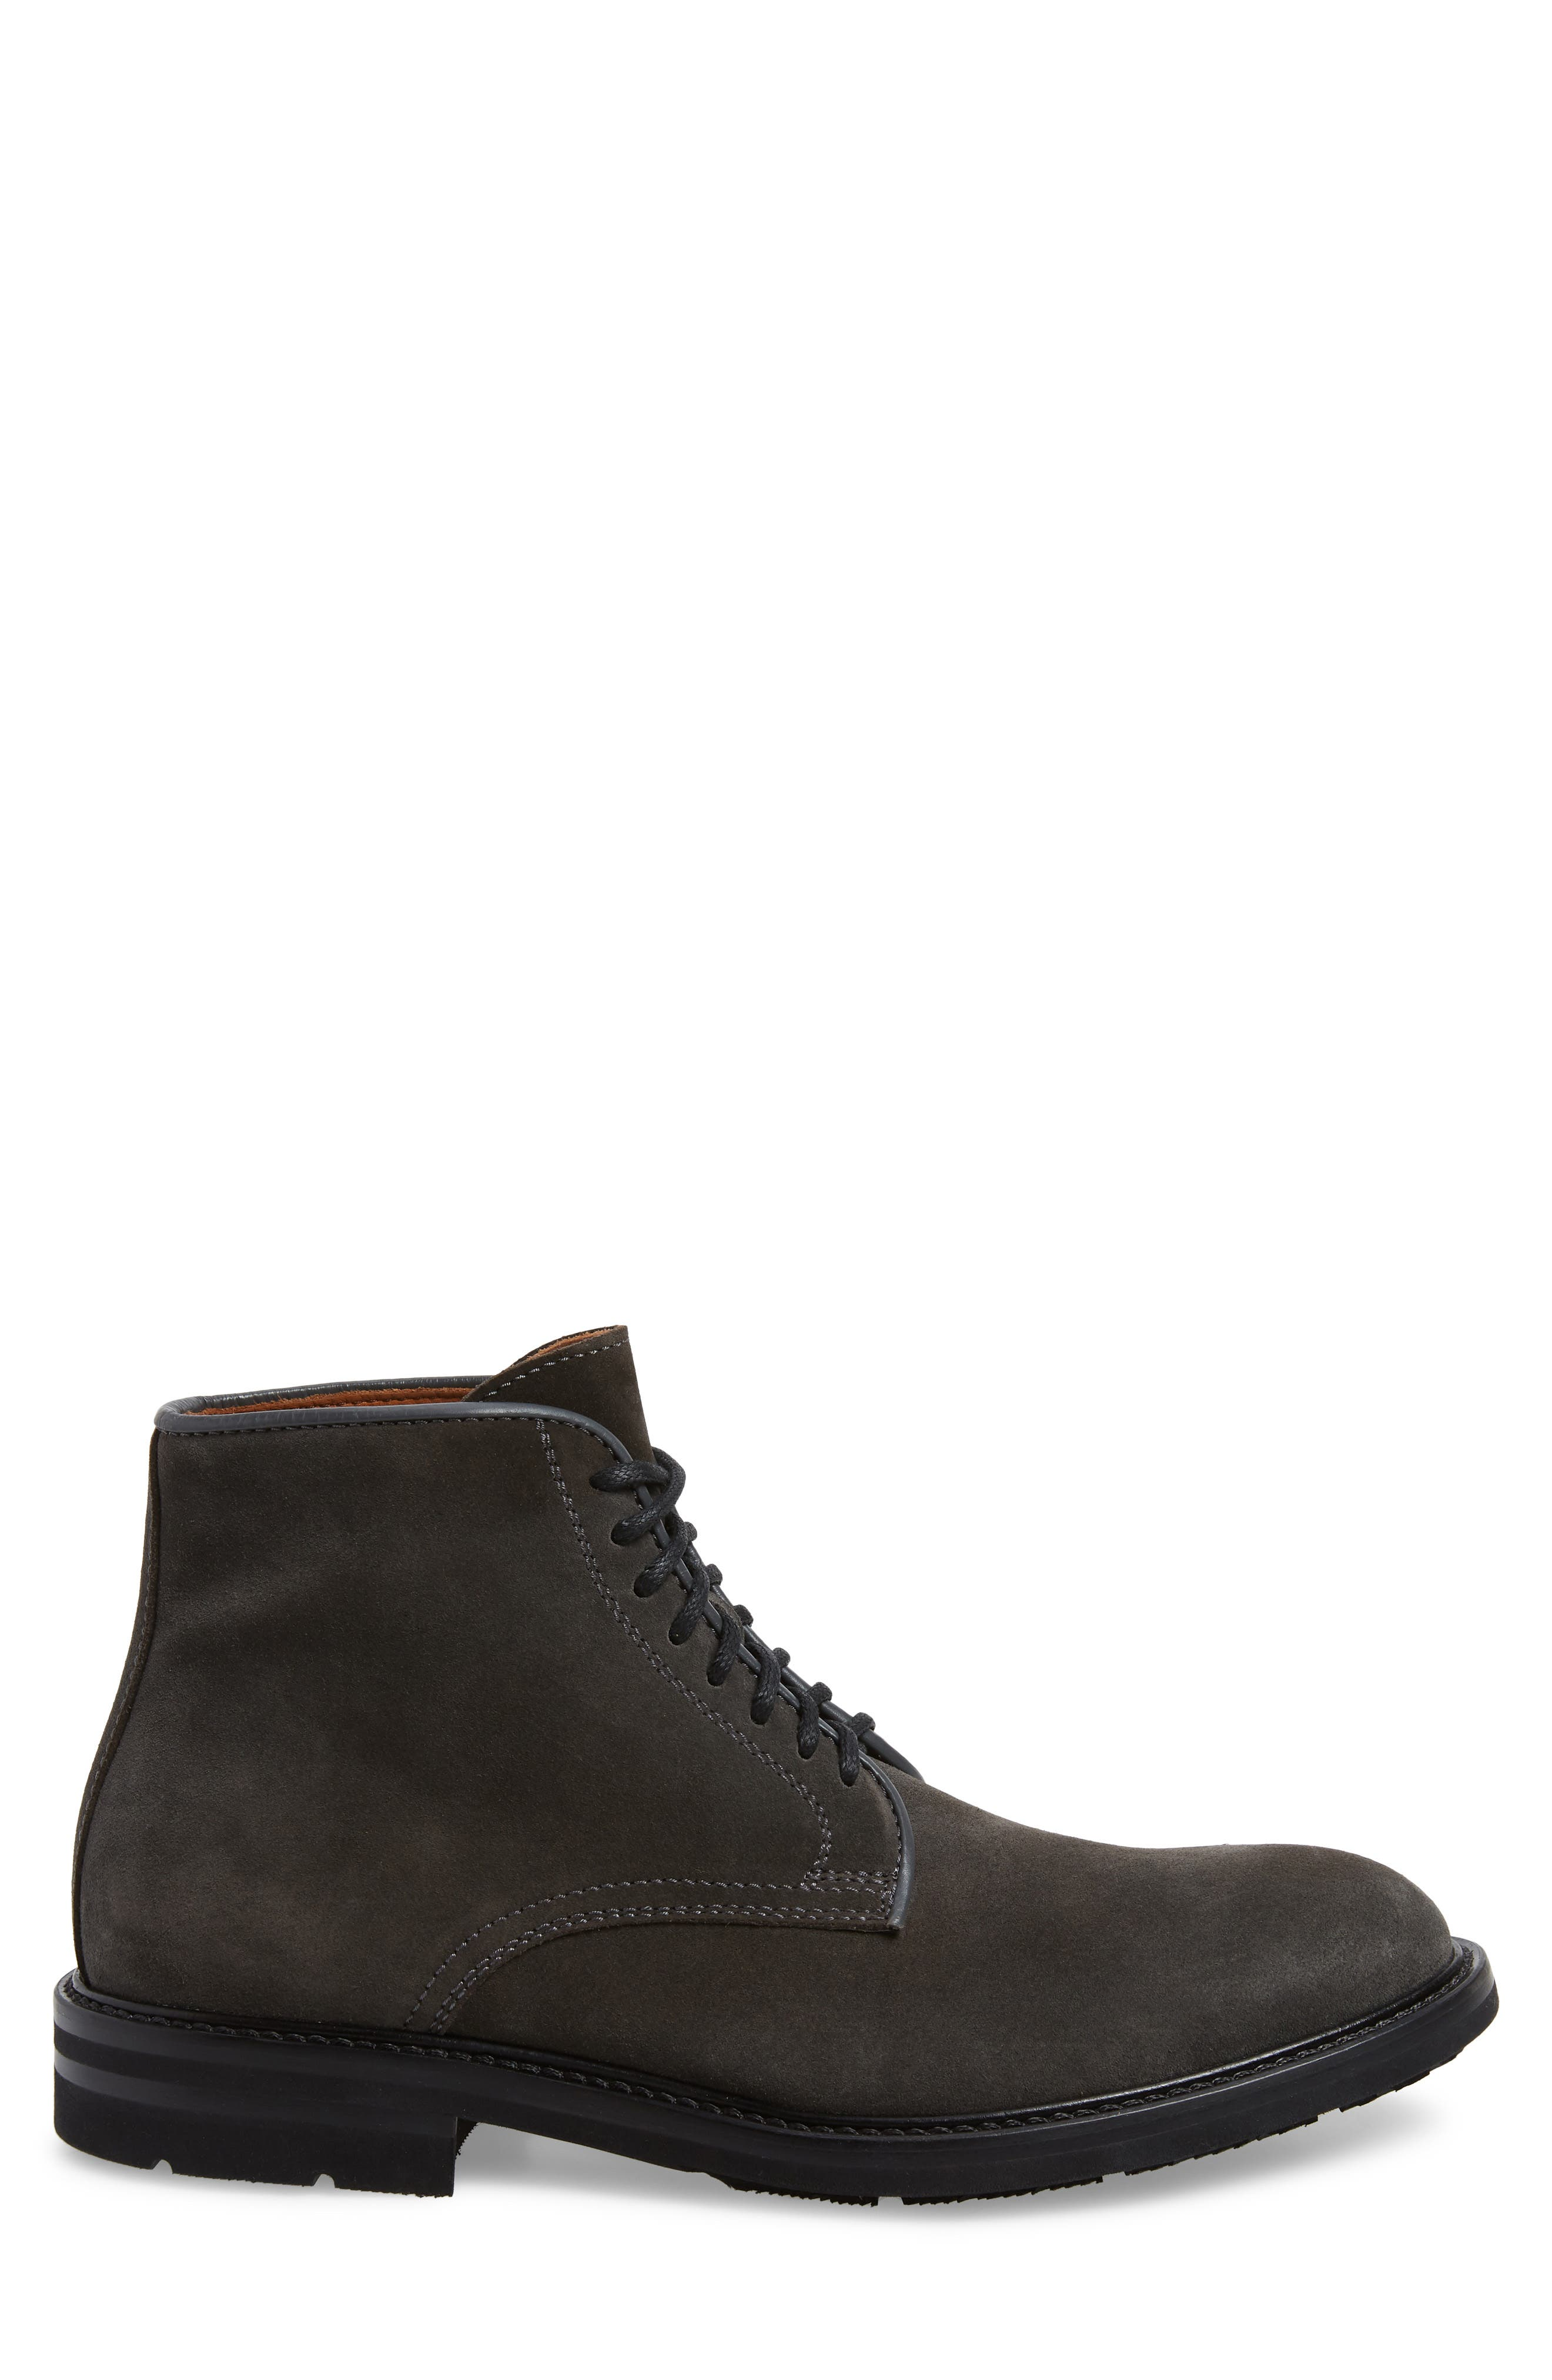 AQUATALIA, Renzo Weatherproof Lace-Up Boot, Alternate thumbnail 3, color, DARK CHARCOAL